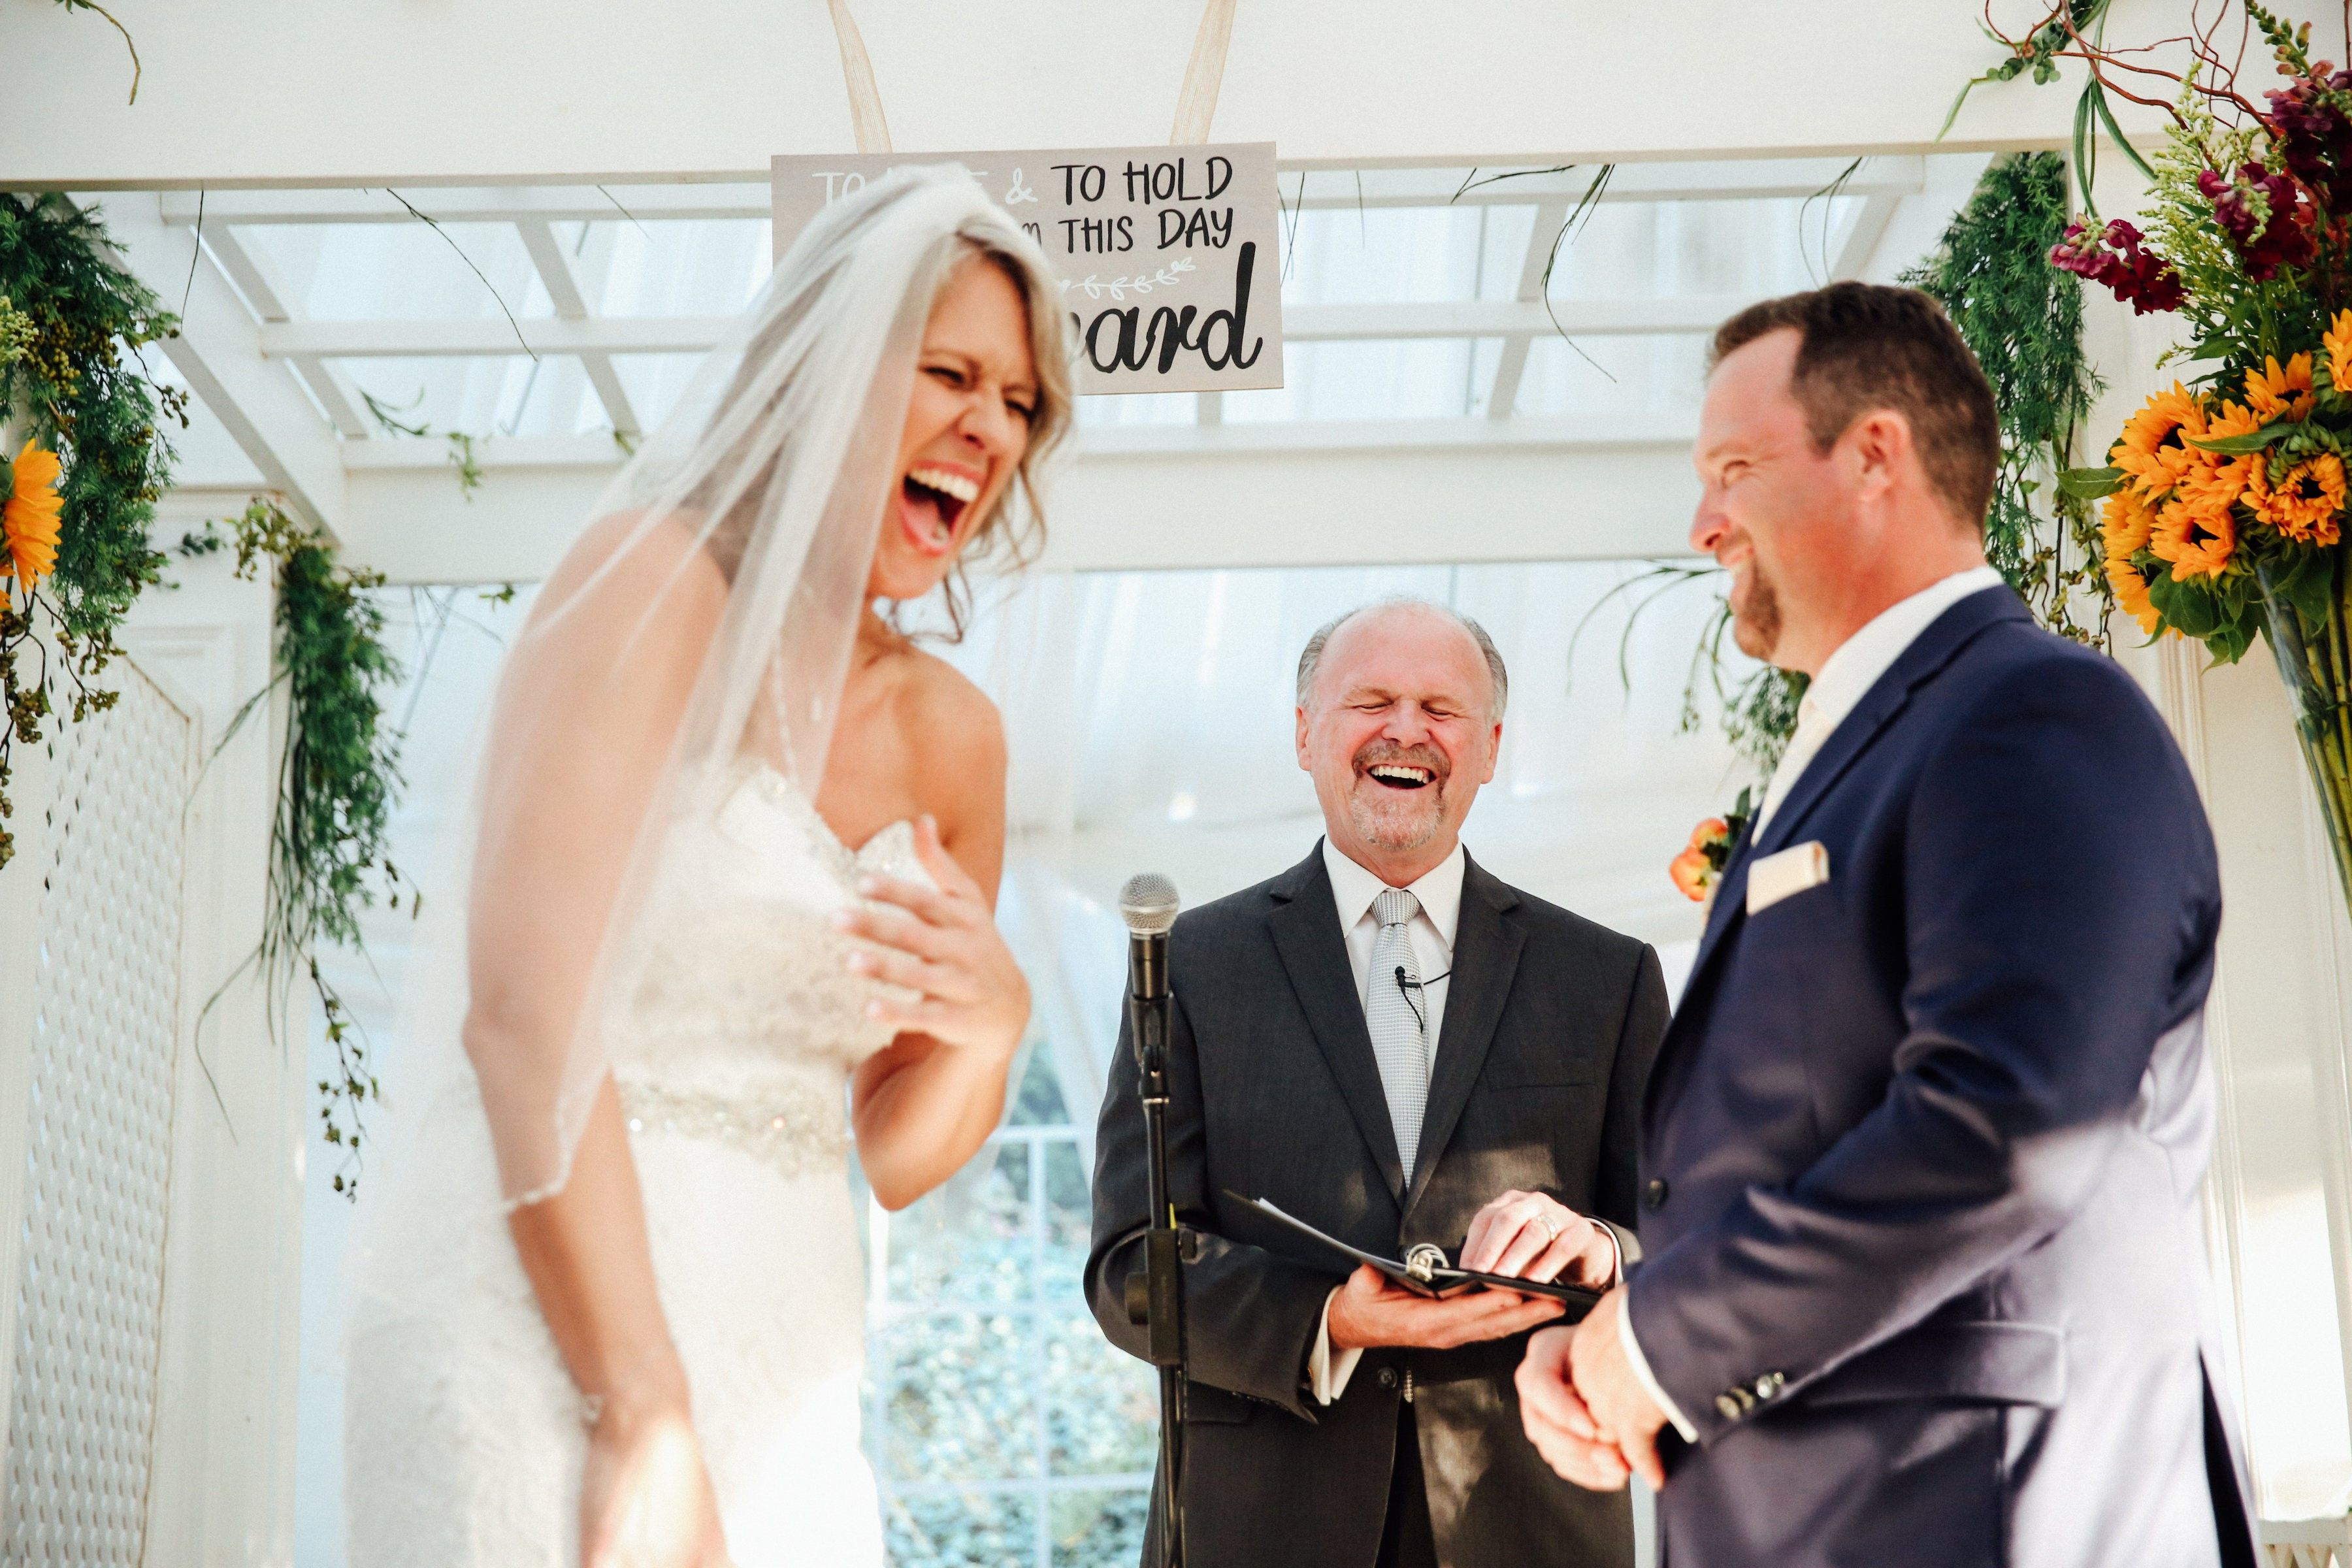 Enduring Promises Wedding Officiants Love To Have Fun During Wedding Ceremonies Here Is Jim Giles Sharing A Laugh Wedding Minister Wedding Officiant Wedding